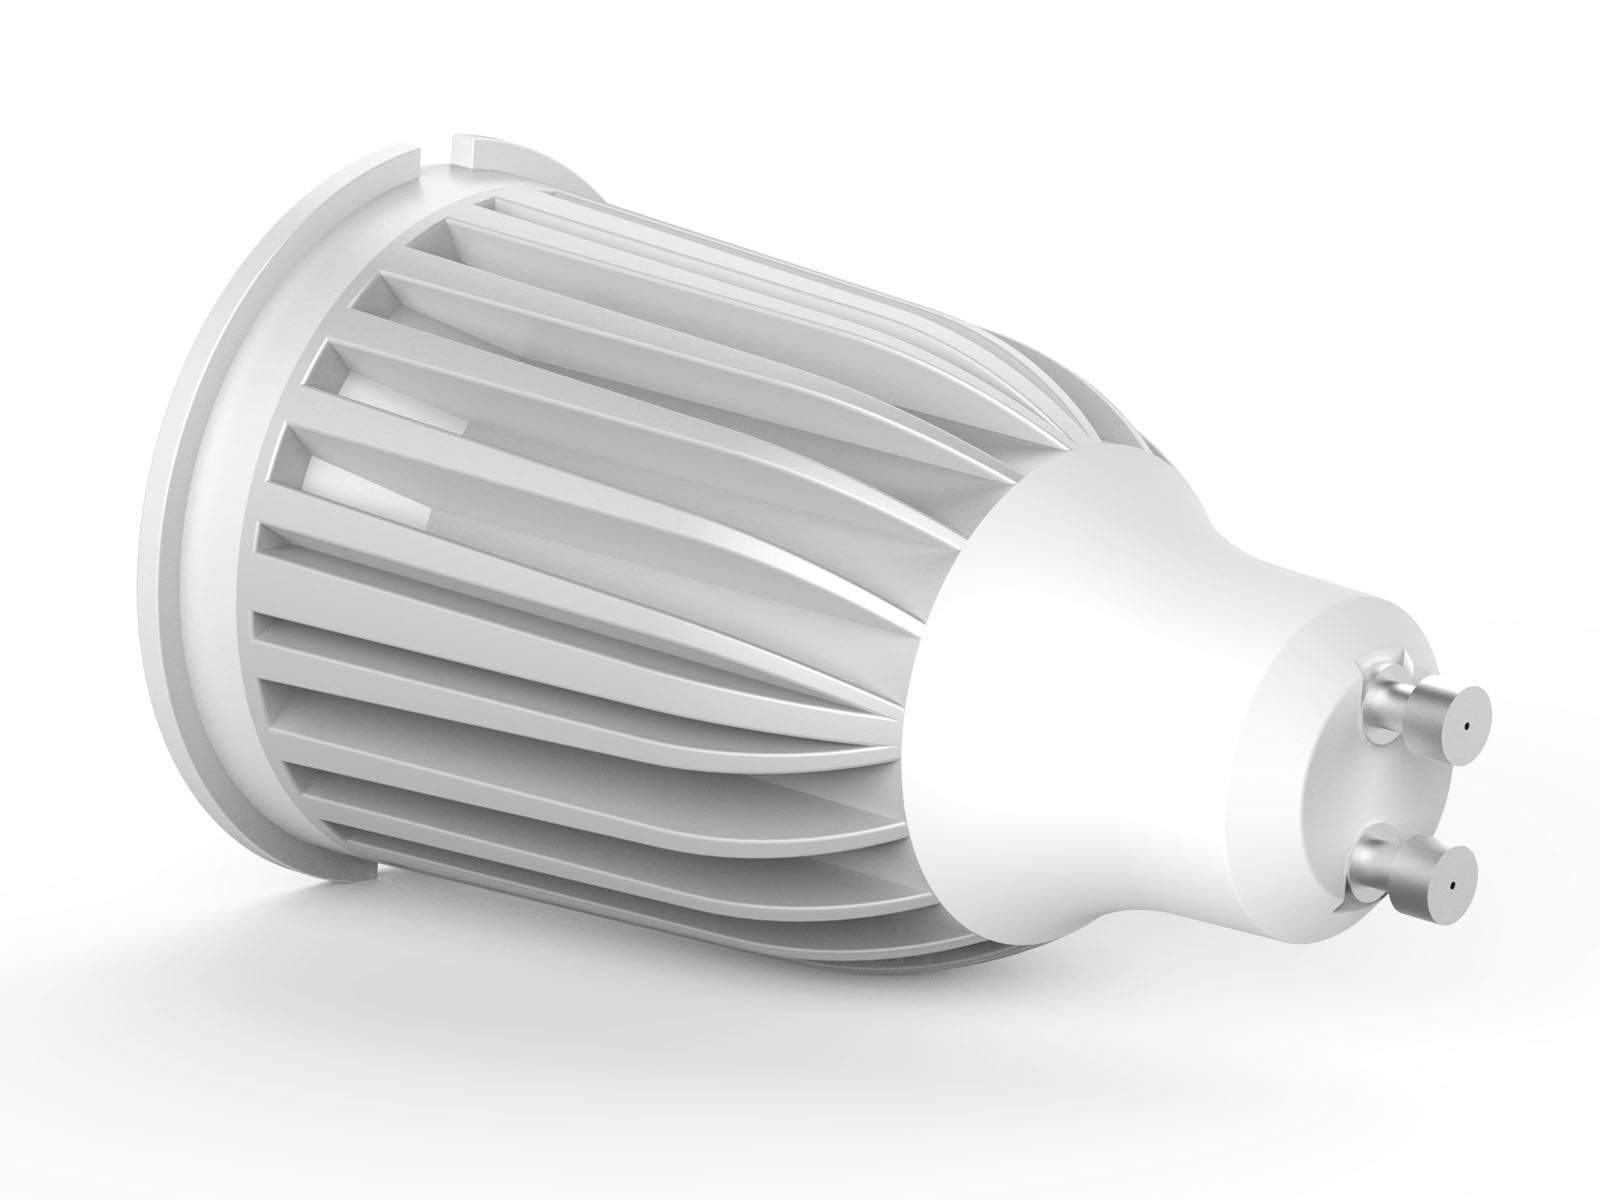 SP92 2 Dimmable SP92 2 LED Spotlight